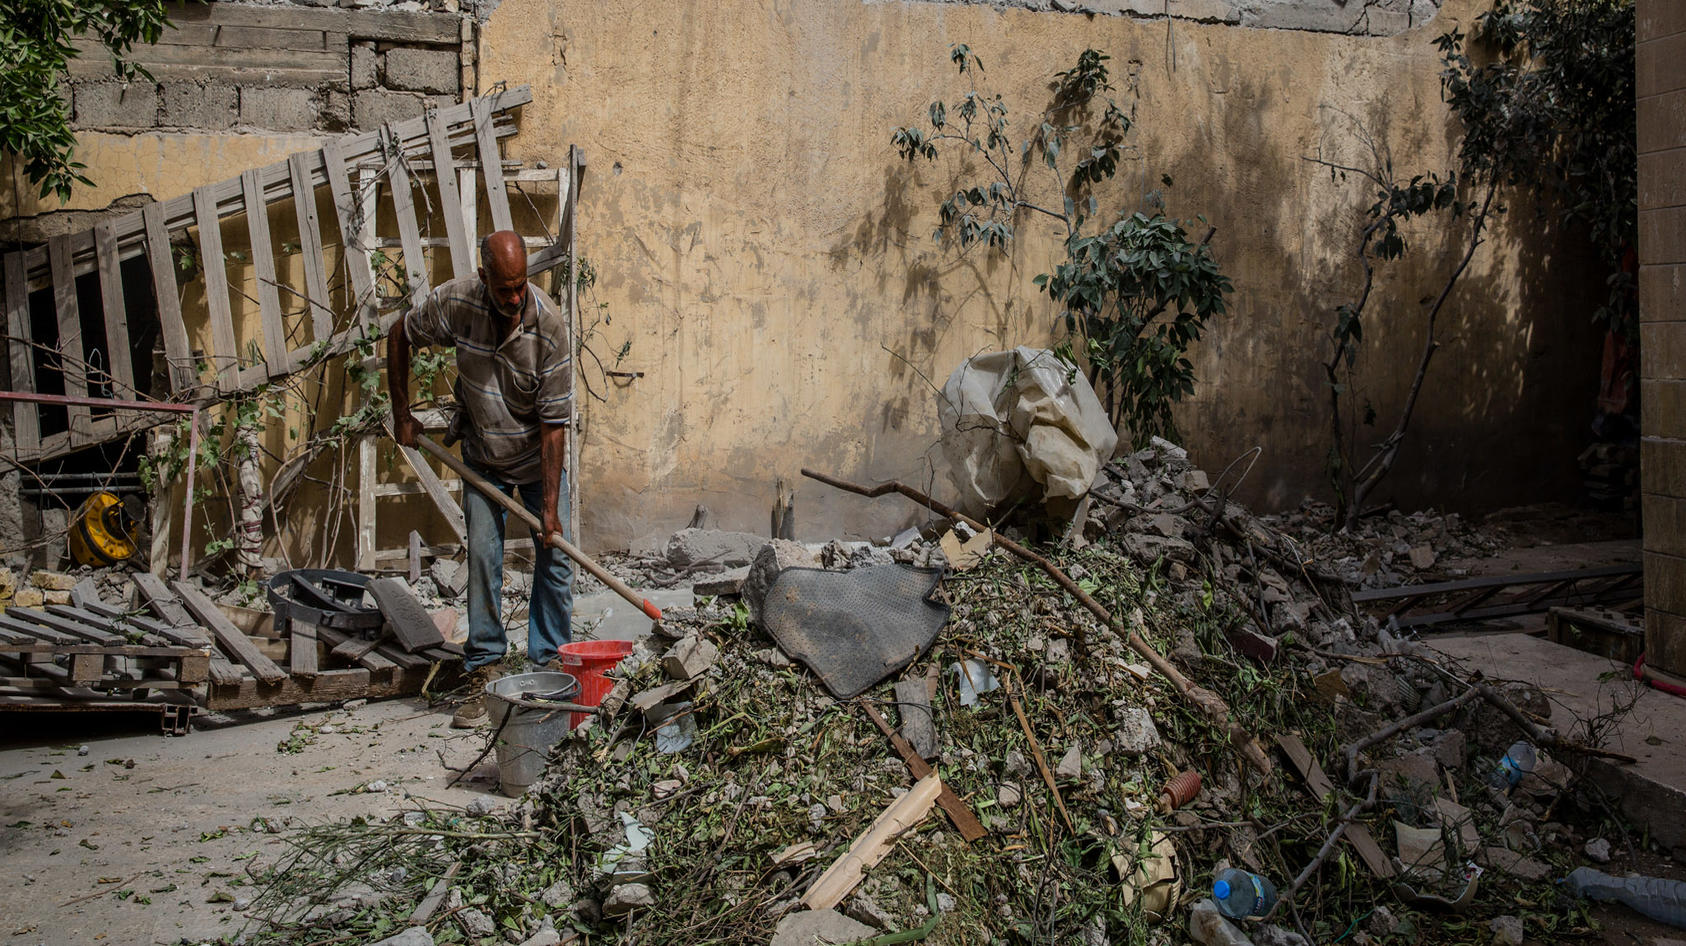 A man clears rubble from his front yard after it was damaged by an airstrike in the Rifai neighborhood of Mosul, Iraq, May 19, 2017.